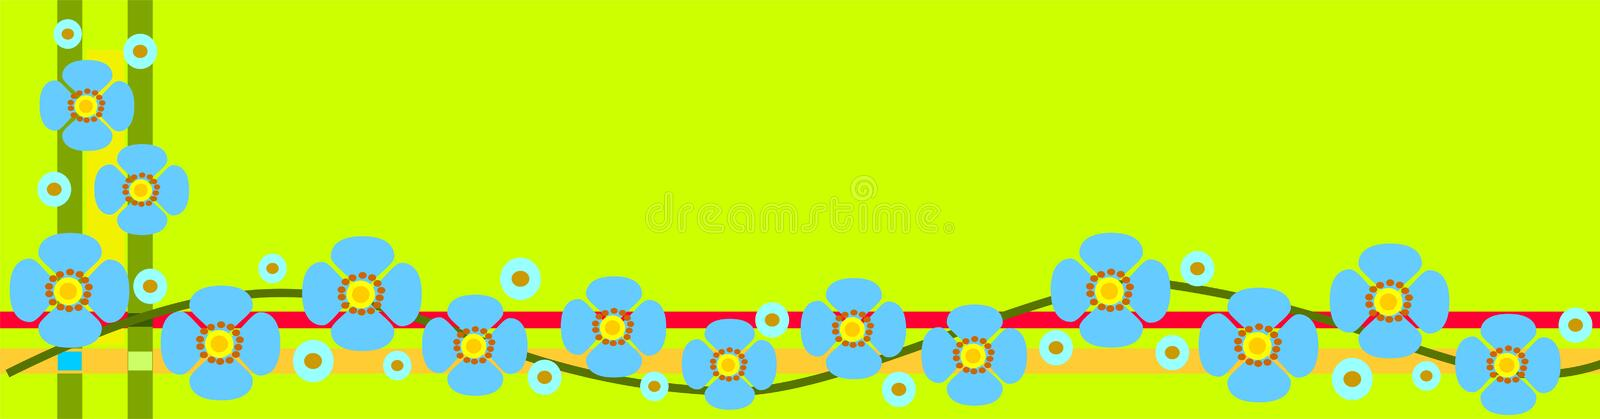 Spring banner with flowers. Decorative header / banner in spring colors with charming little flowers and flower buds vector illustration